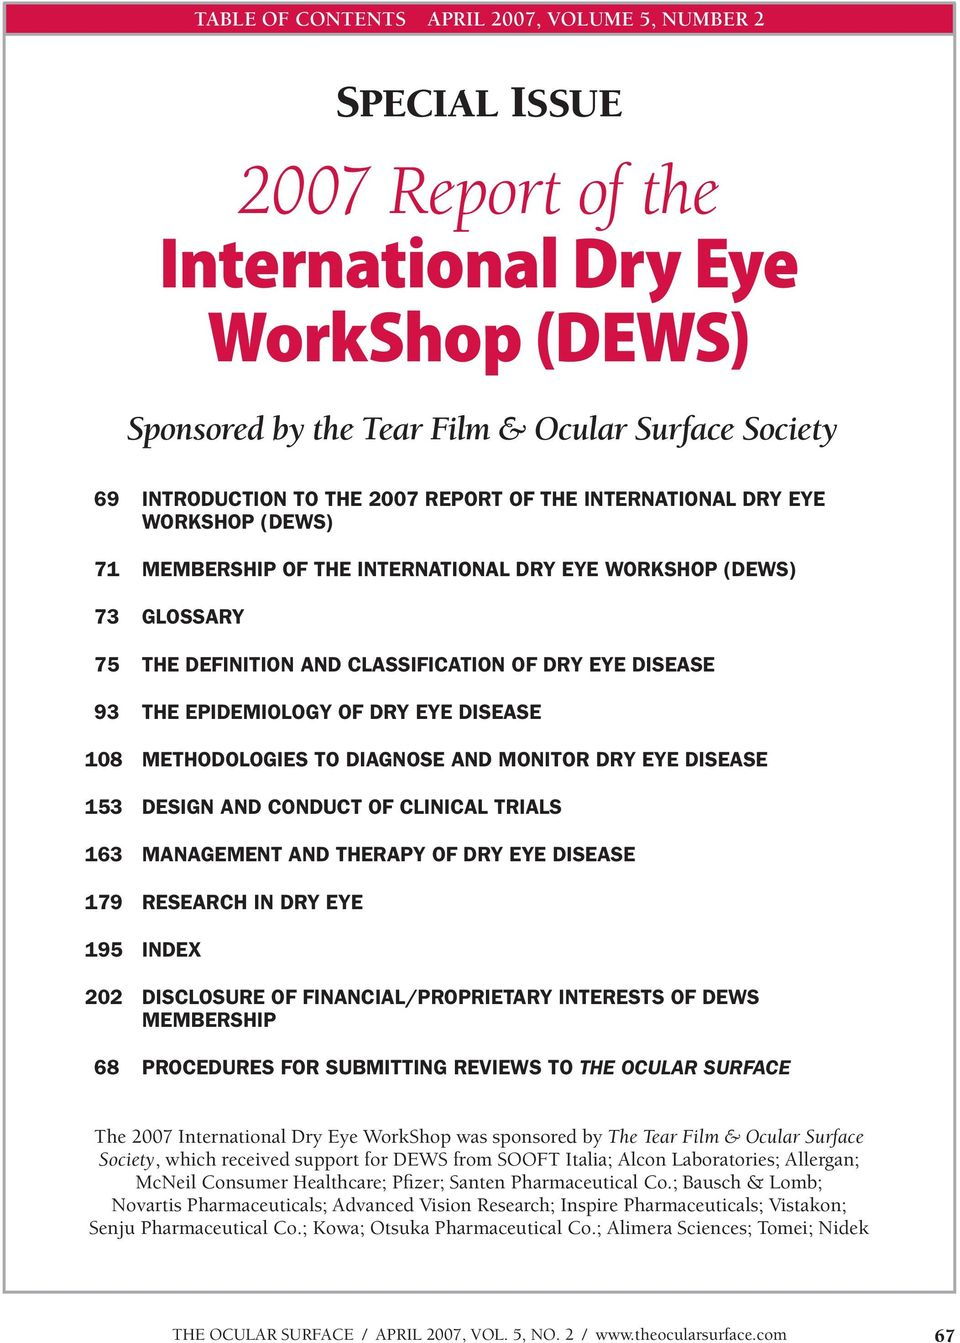 of Dry Eye Disease 108 Methodologies to Diagnose and Monitor Dry Eye Disease 153 Design and Conduct of Clinical Trials 163 Management and Therapy of Dry Eye Disease 179 Research in Dry Eye 195 Index